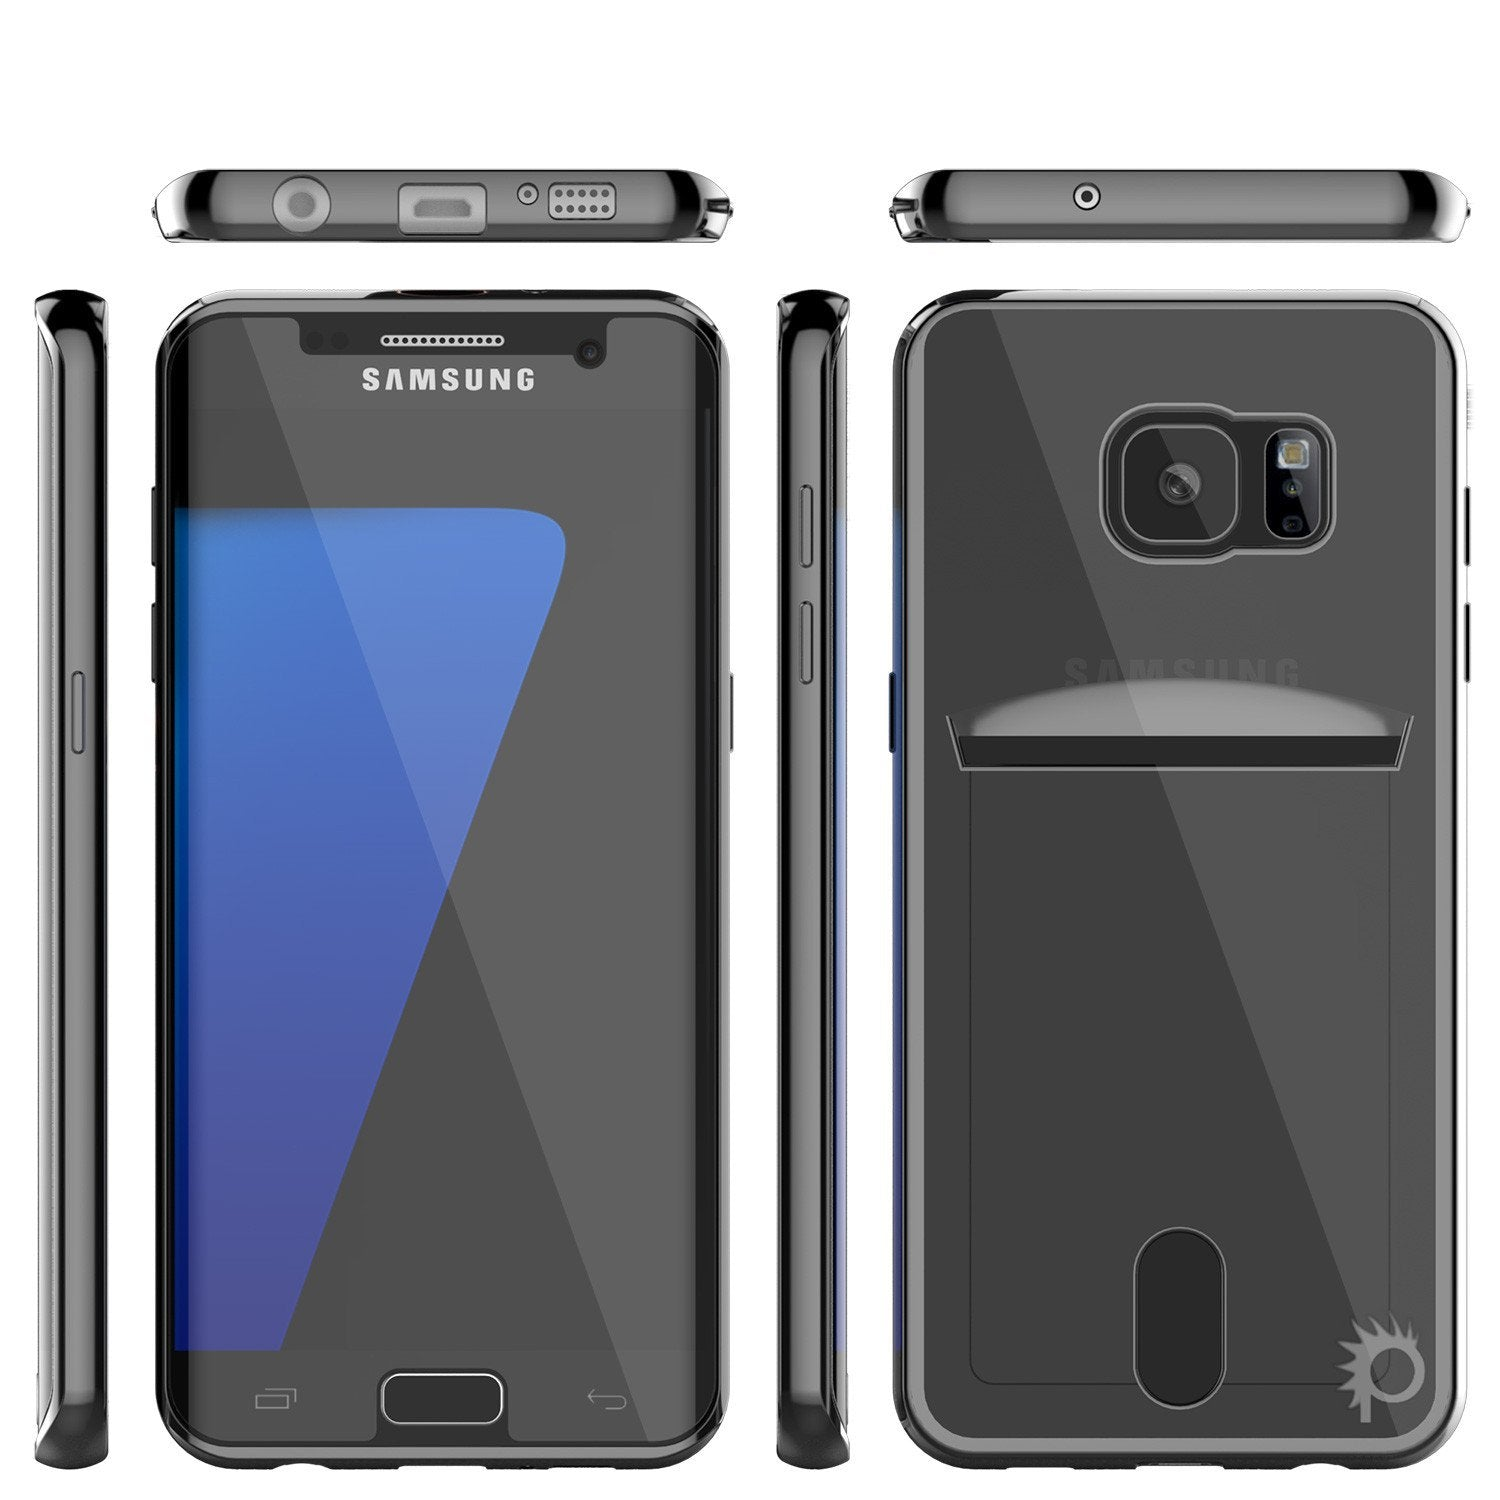 Galaxy S7 Case, PUNKCASE® LUCID Black Series | Card Slot | SHIELD Screen Protector | Ultra fit - PunkCase NZ